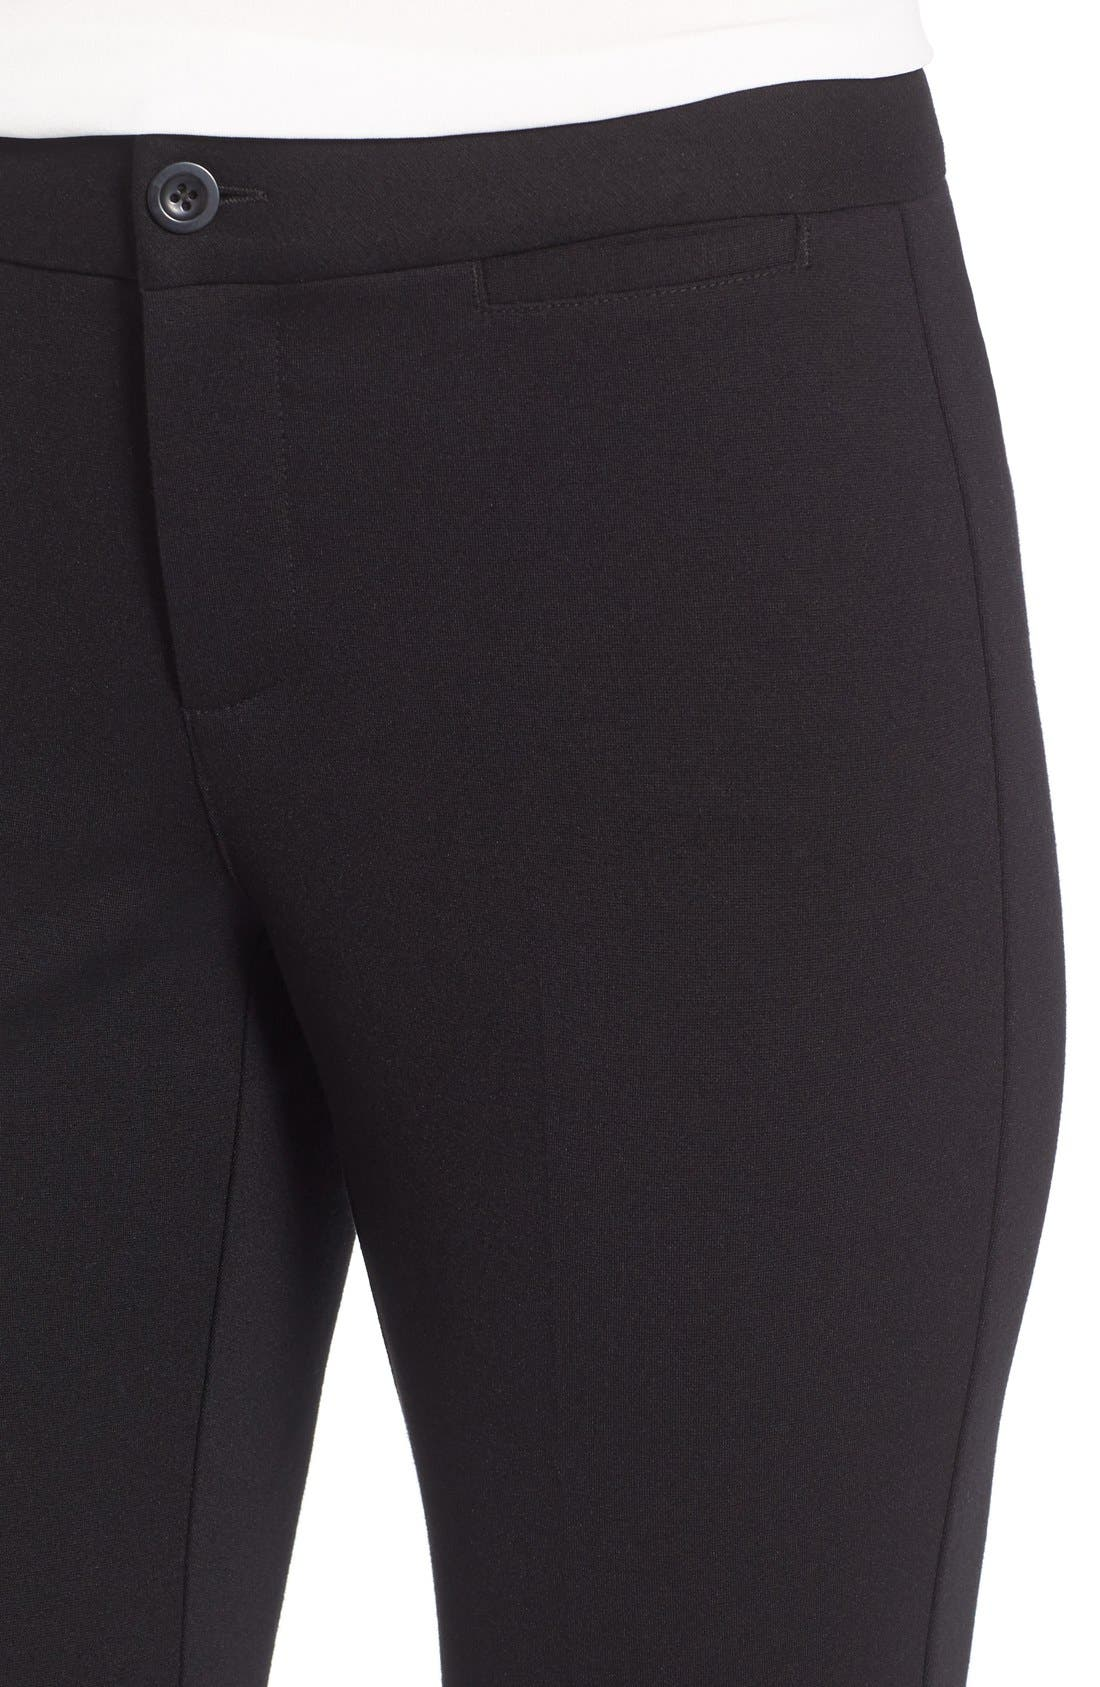 Alternate Image 4  - NYDJ Michelle Stretch Ponte Trousers (Regular & Petite)